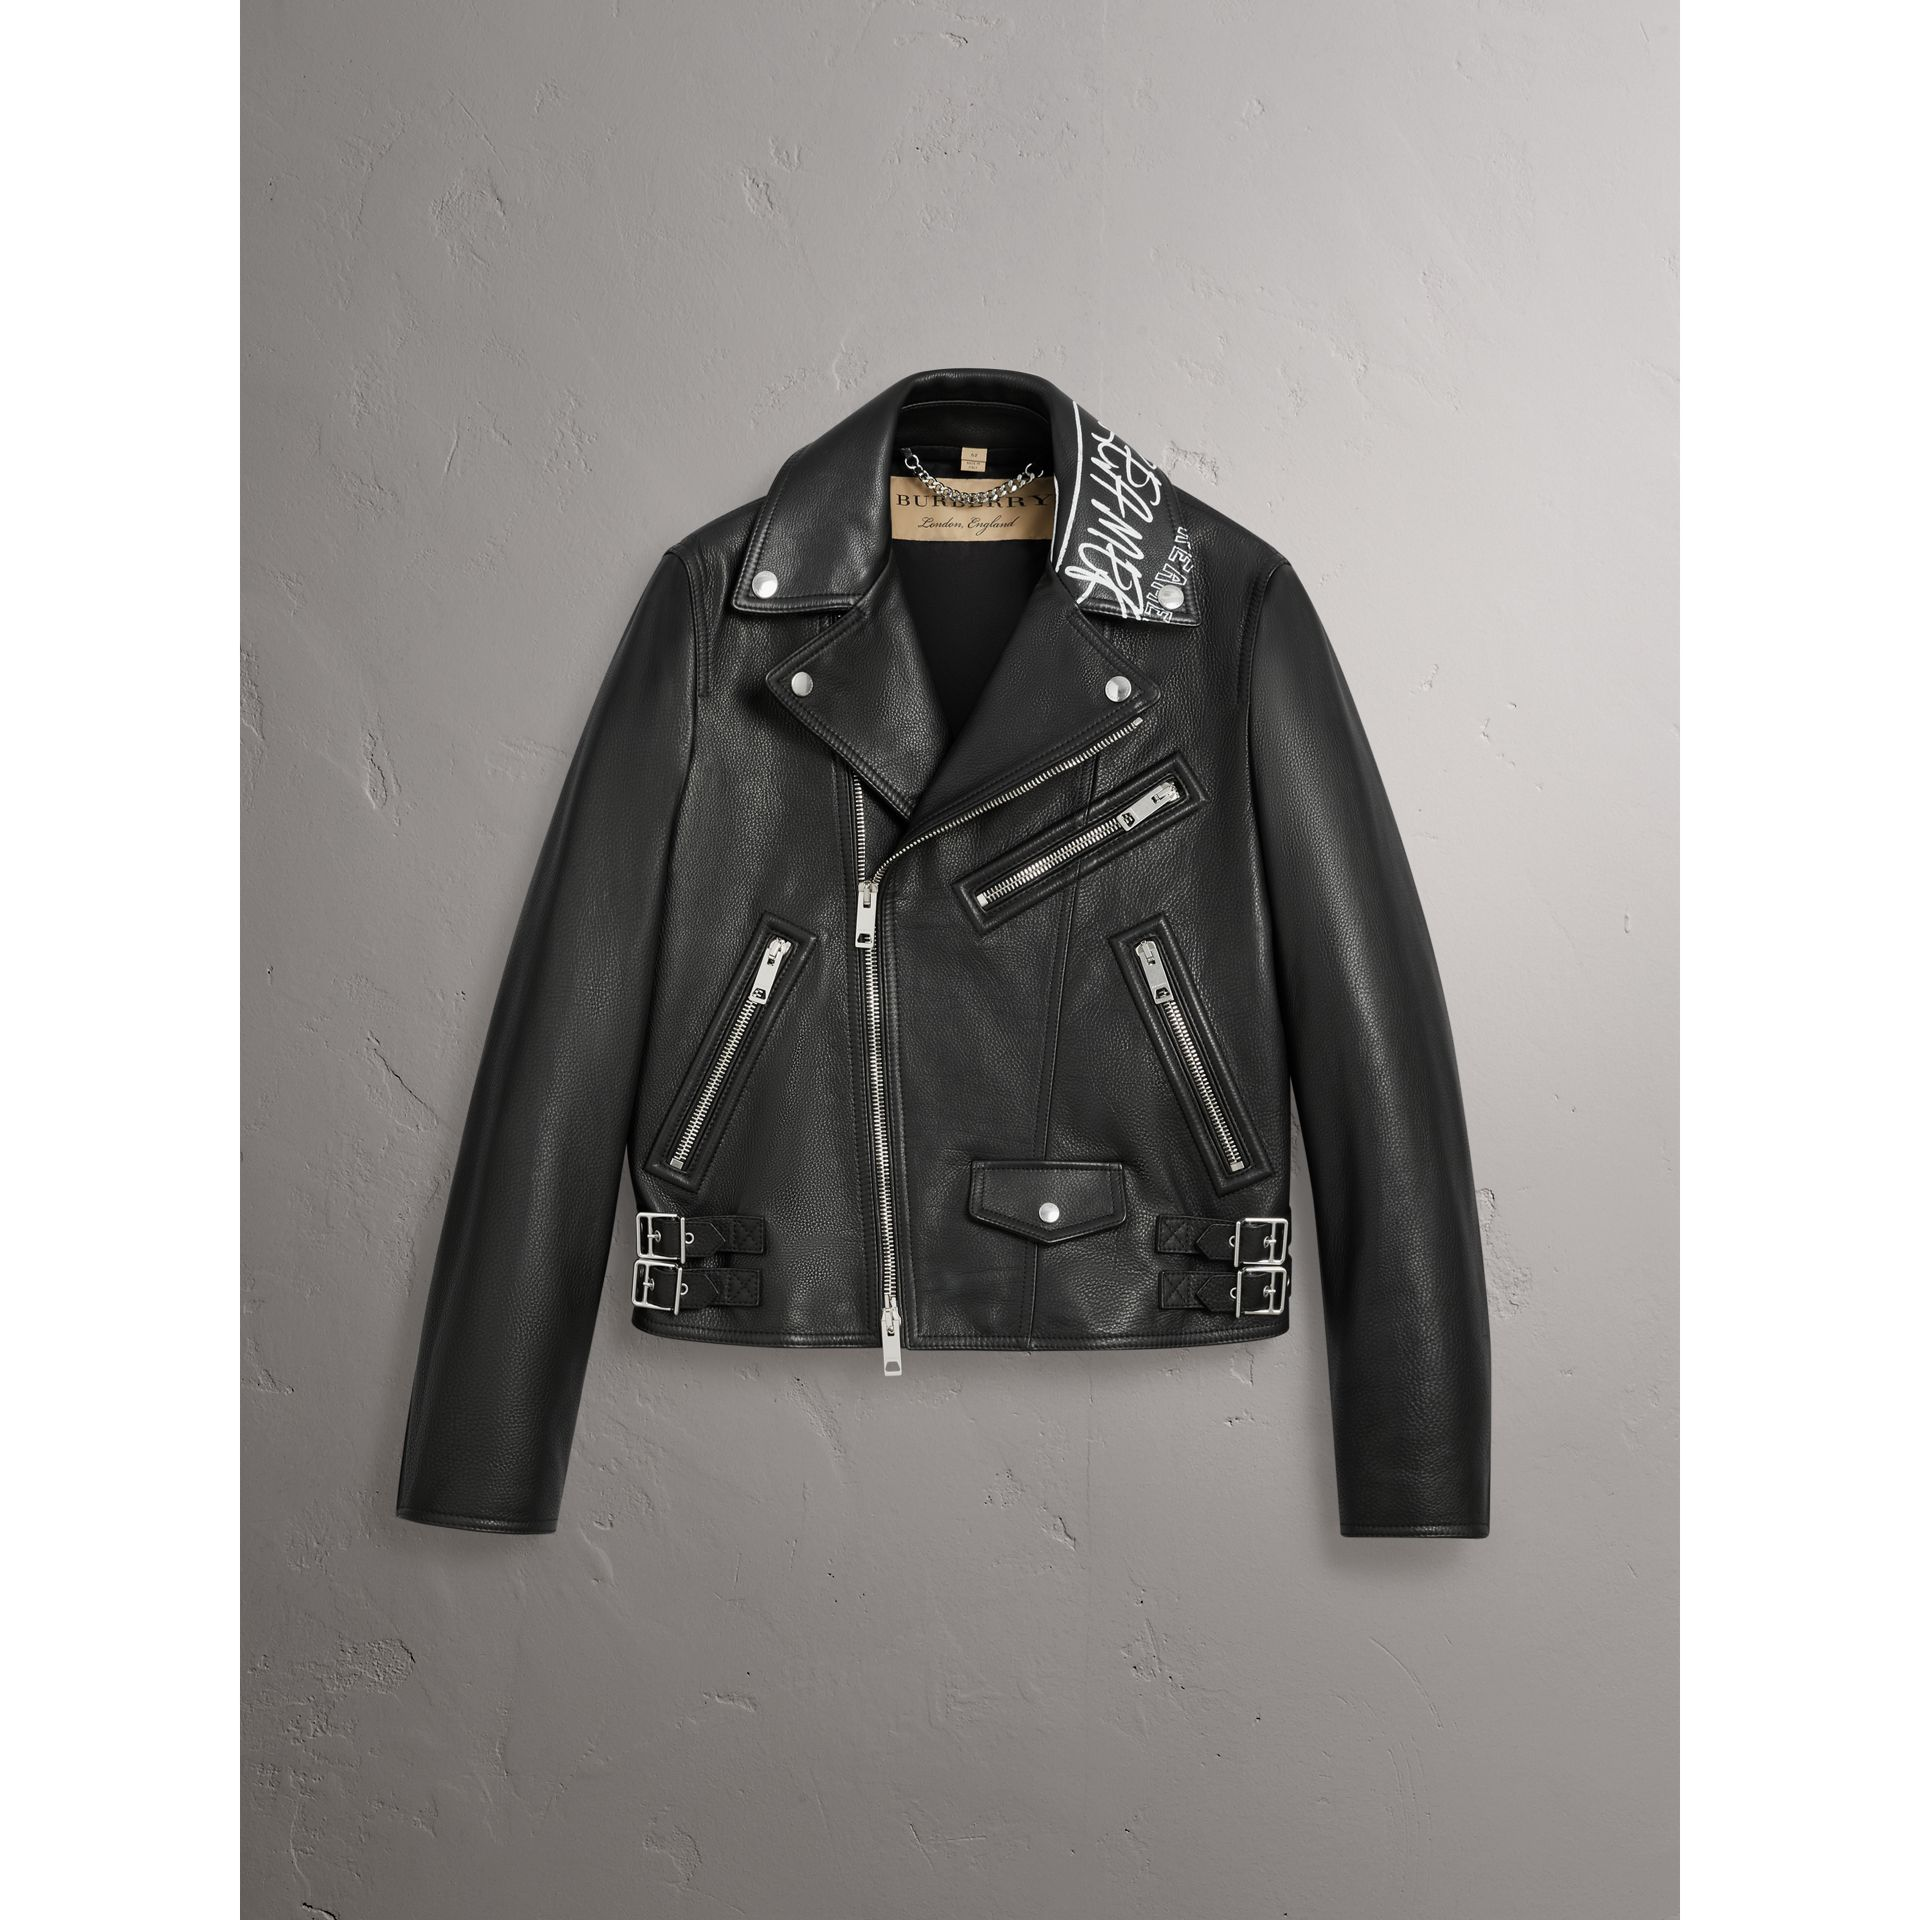 Burberry x Kris Wu Leather Biker Jacket in Black - Men | Burberry Hong Kong - gallery image 3